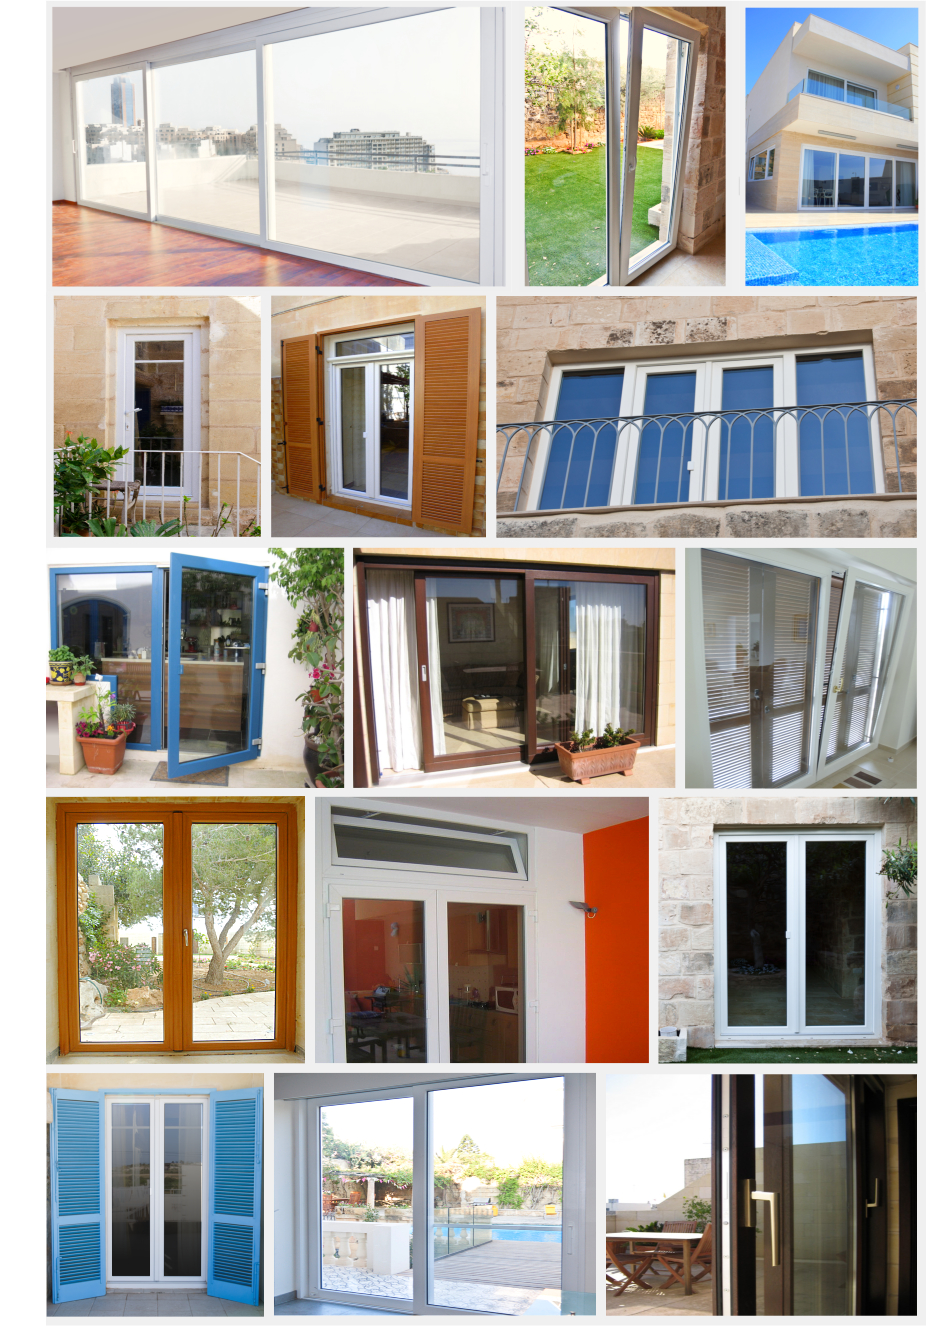 Doors in Malta, Designed and Supplied by AM Projects Malta